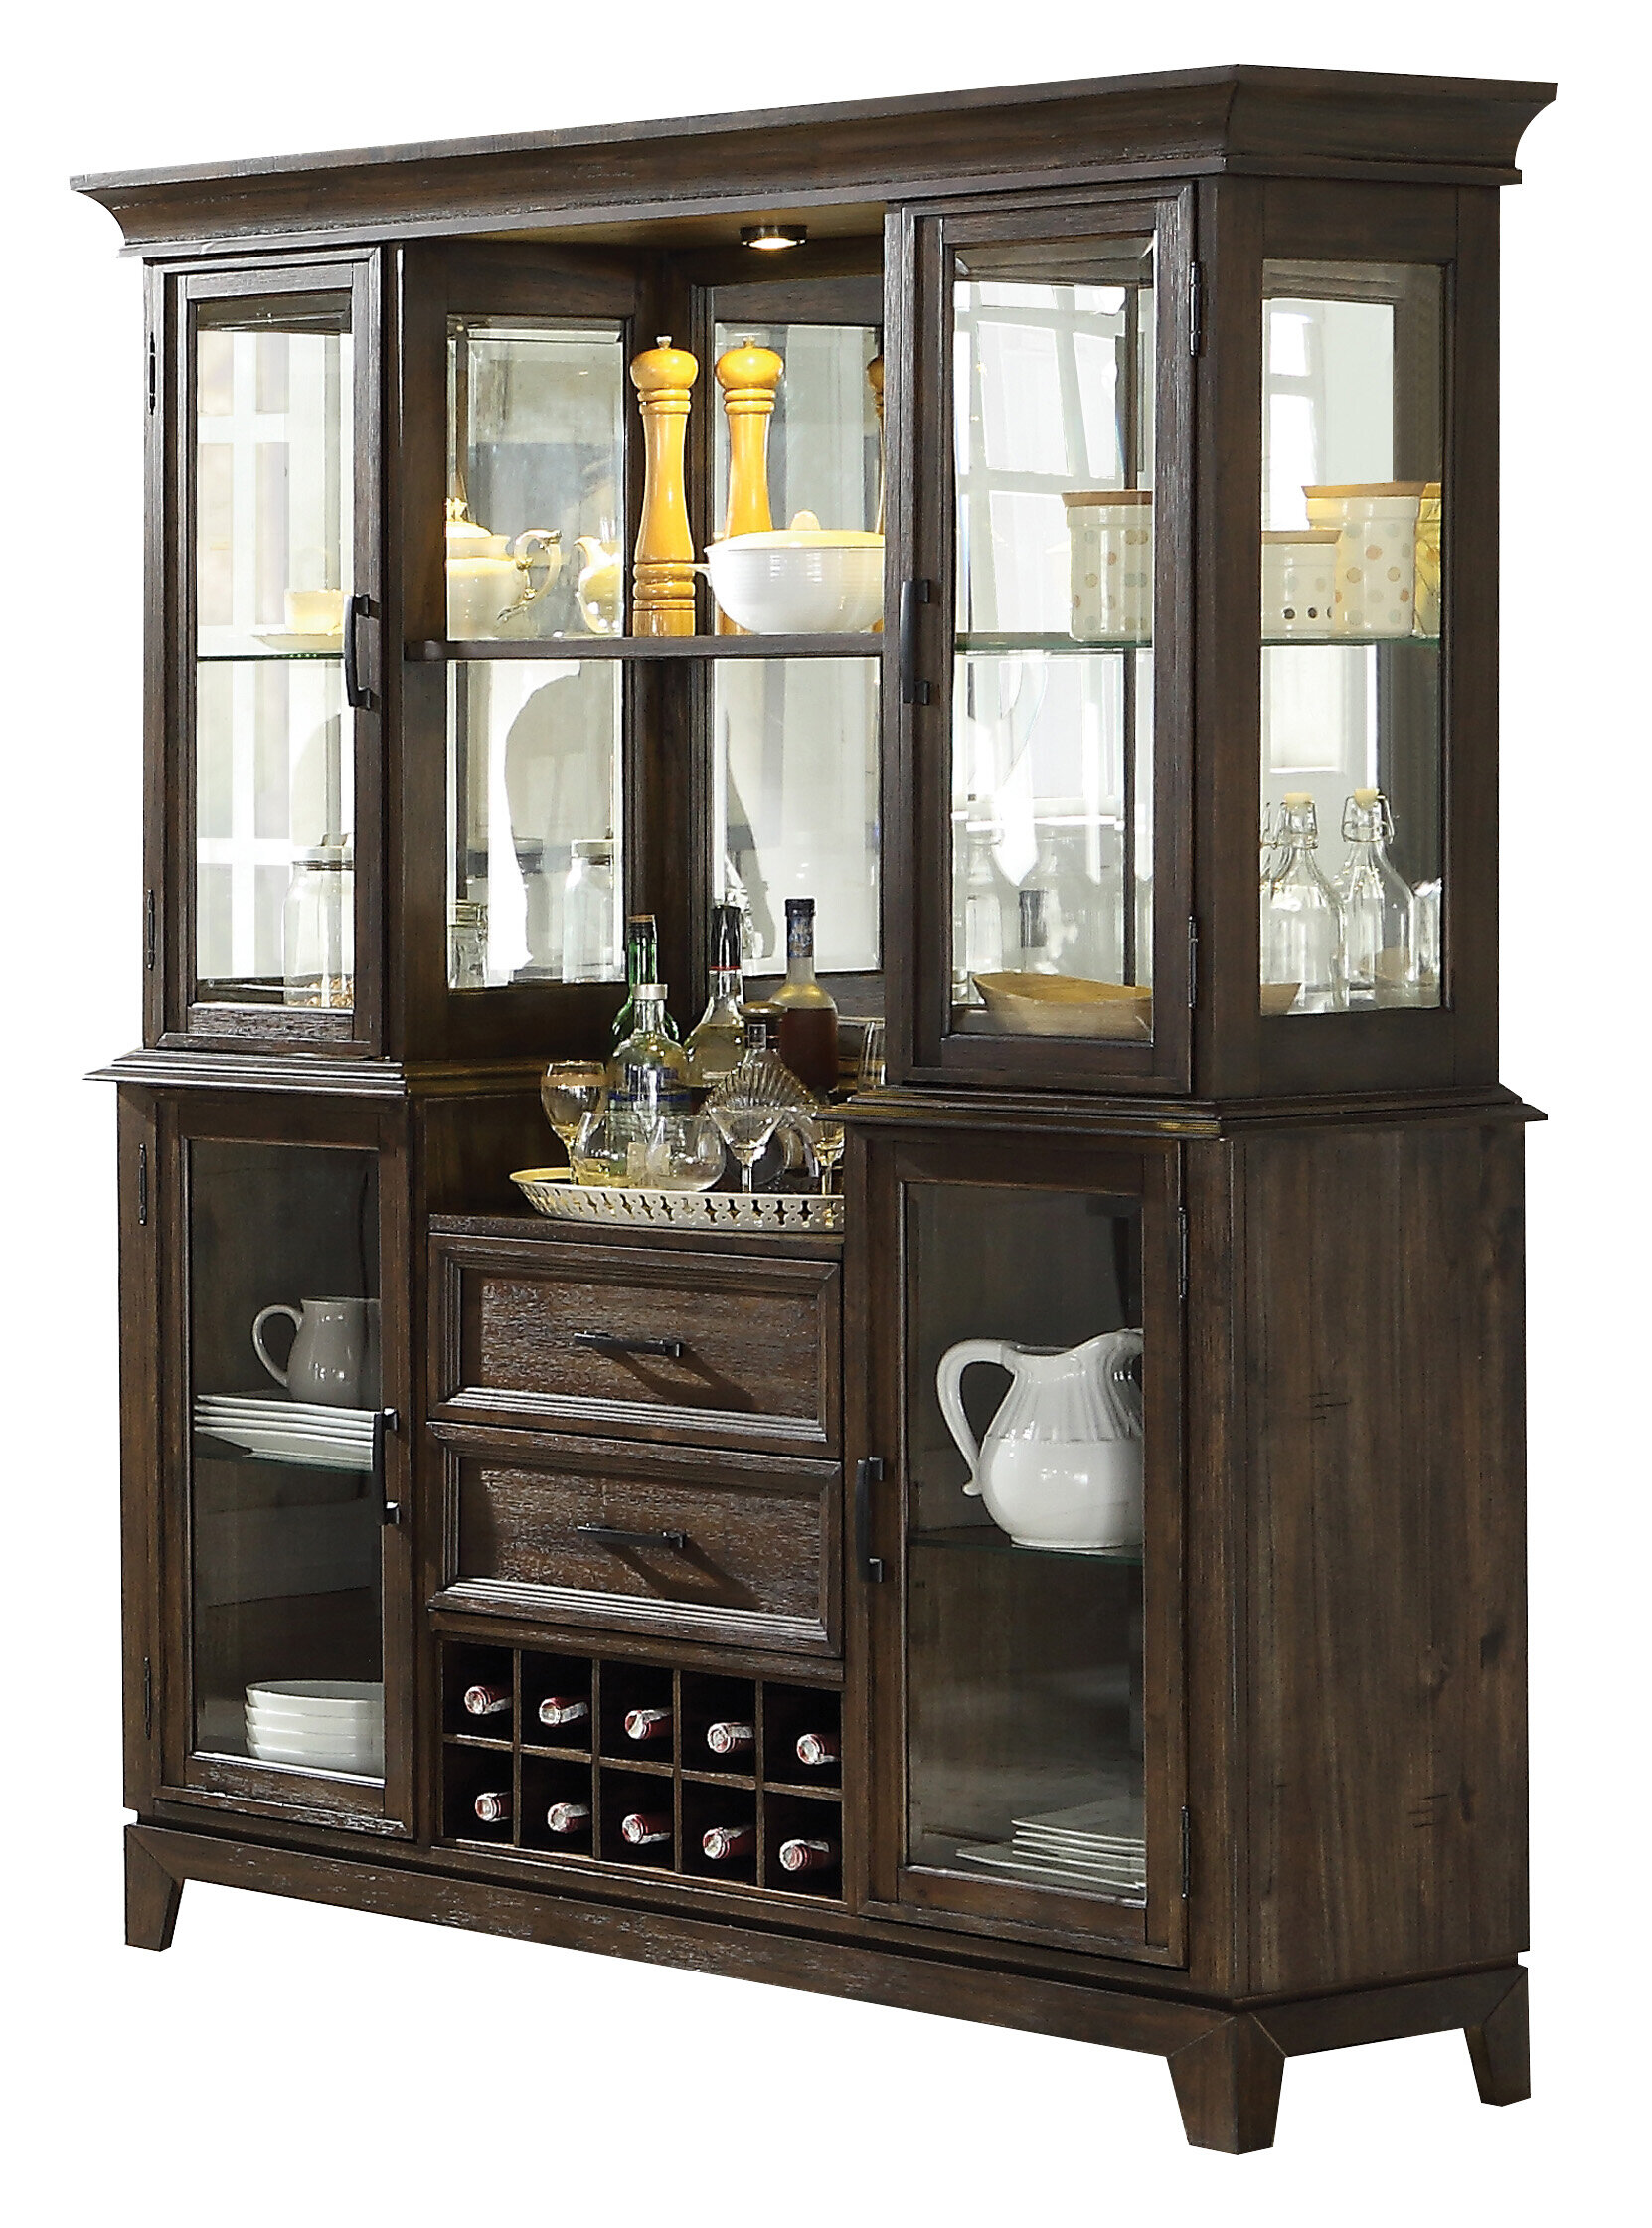 1 Shelf Dining Hutch Display China Cabinets You Ll Love In 2021 Wayfair